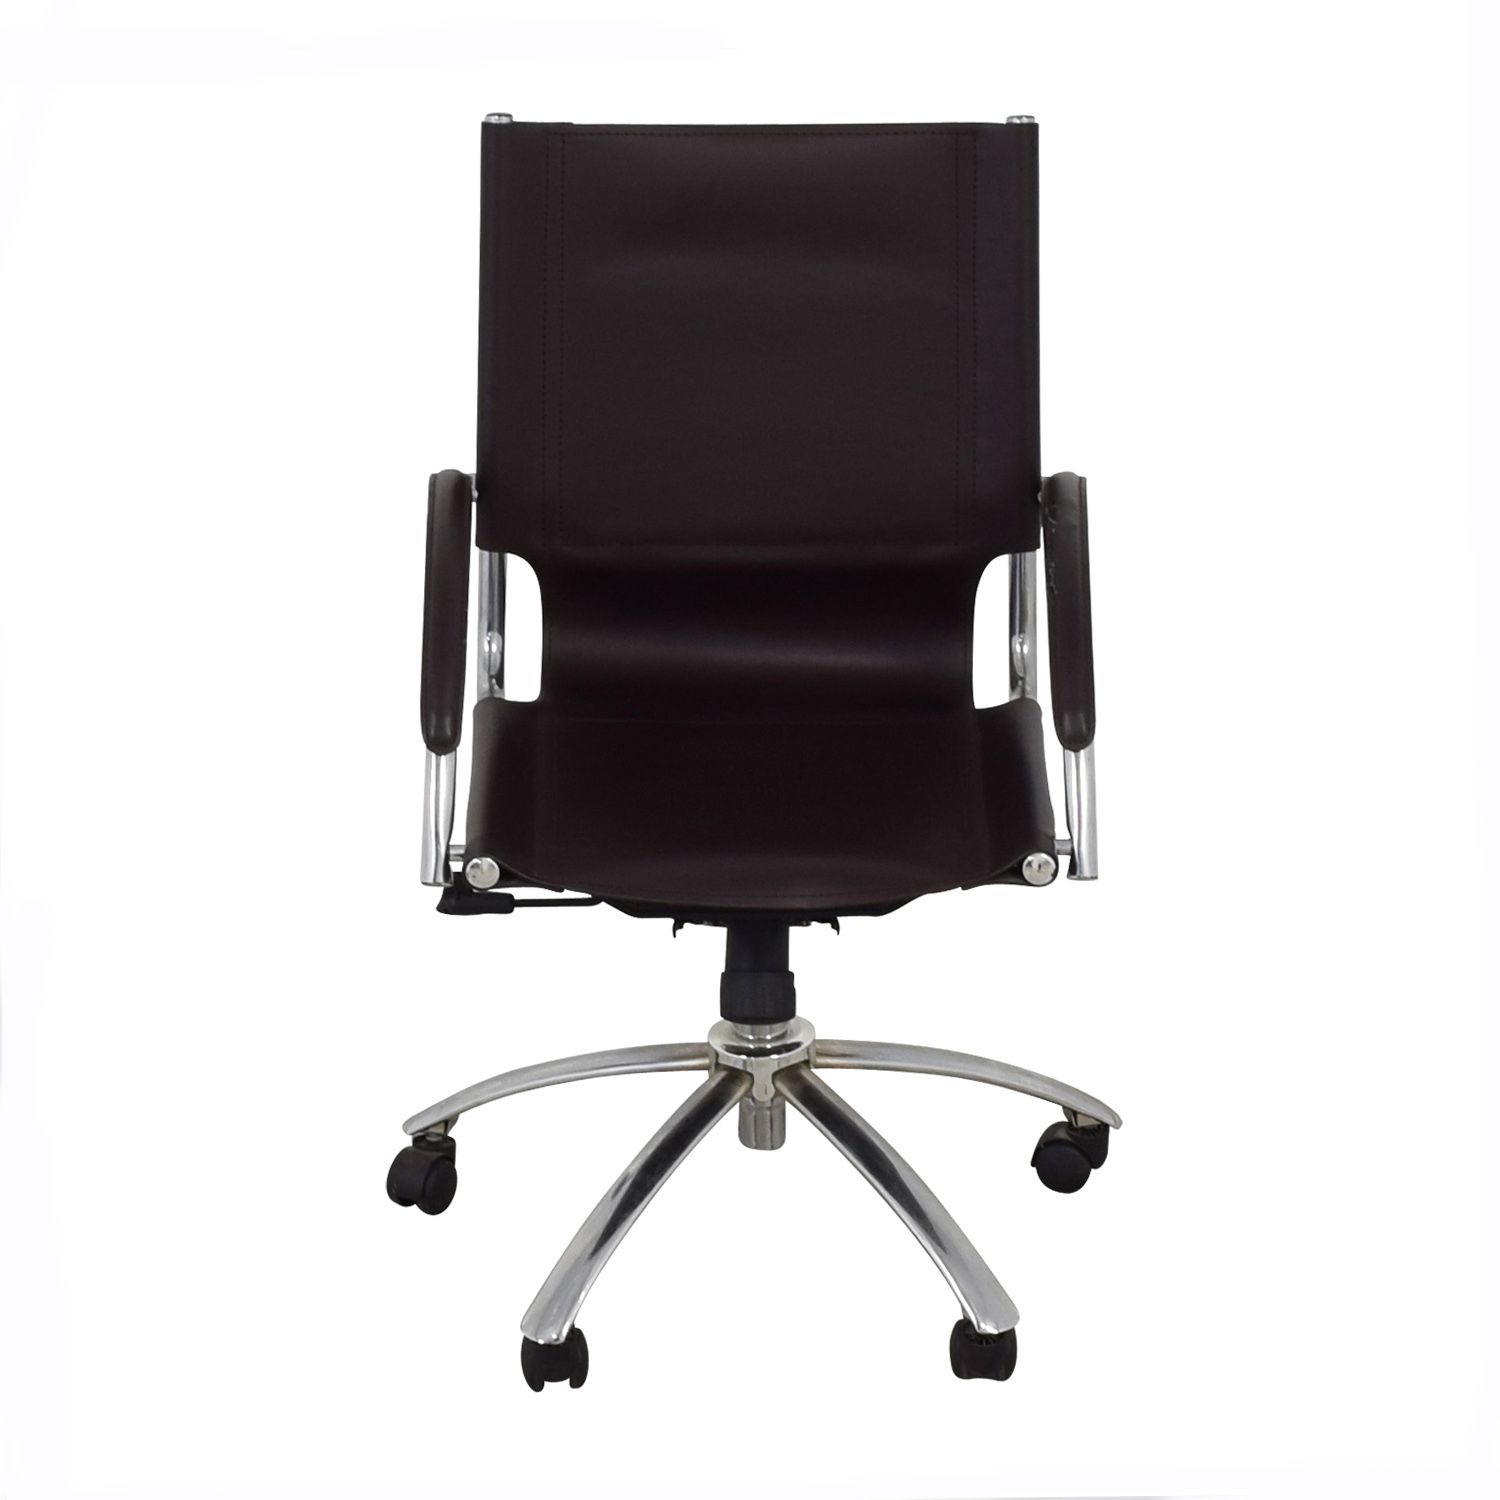 check out 770d6 608f0 90% OFF - West Elm West Elm Brown Leather Swivel Desk Chair / Chairs